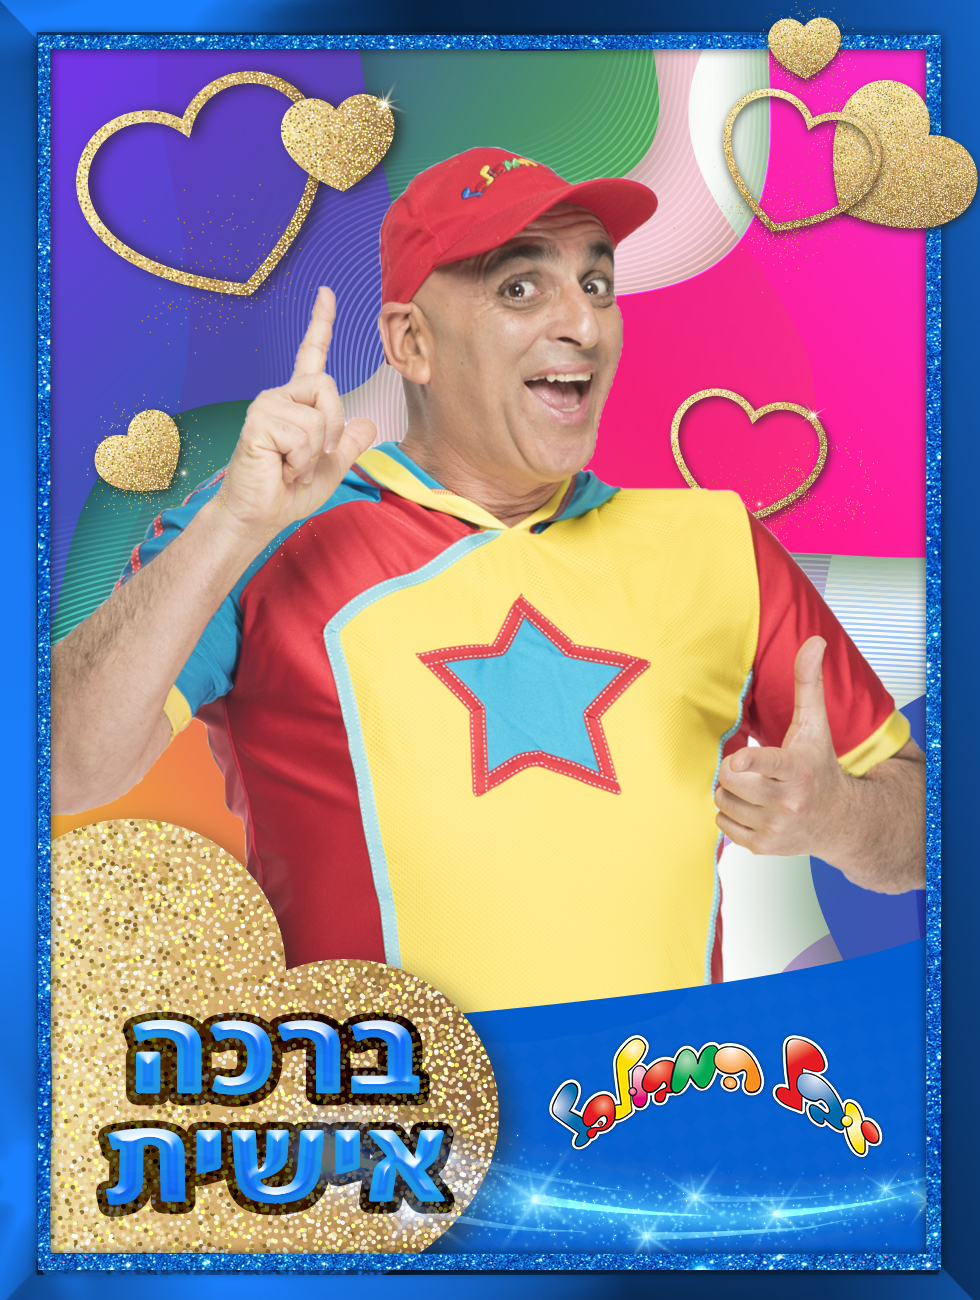 yuval-youkid